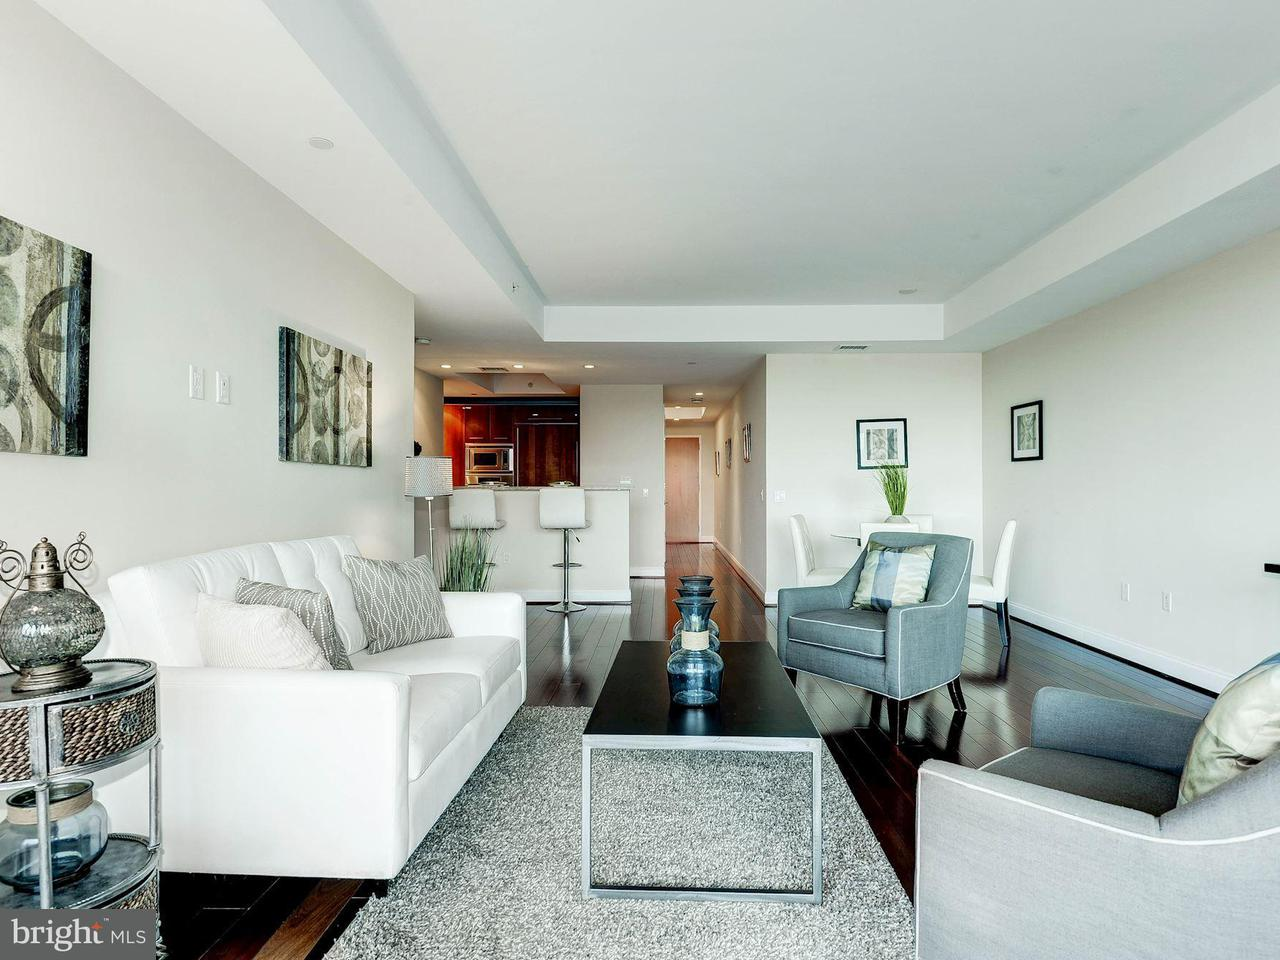 Additional photo for property listing at 1881 NASH ST #1208 1881 NASH ST #1208 Arlington, Virginia 22209 United States